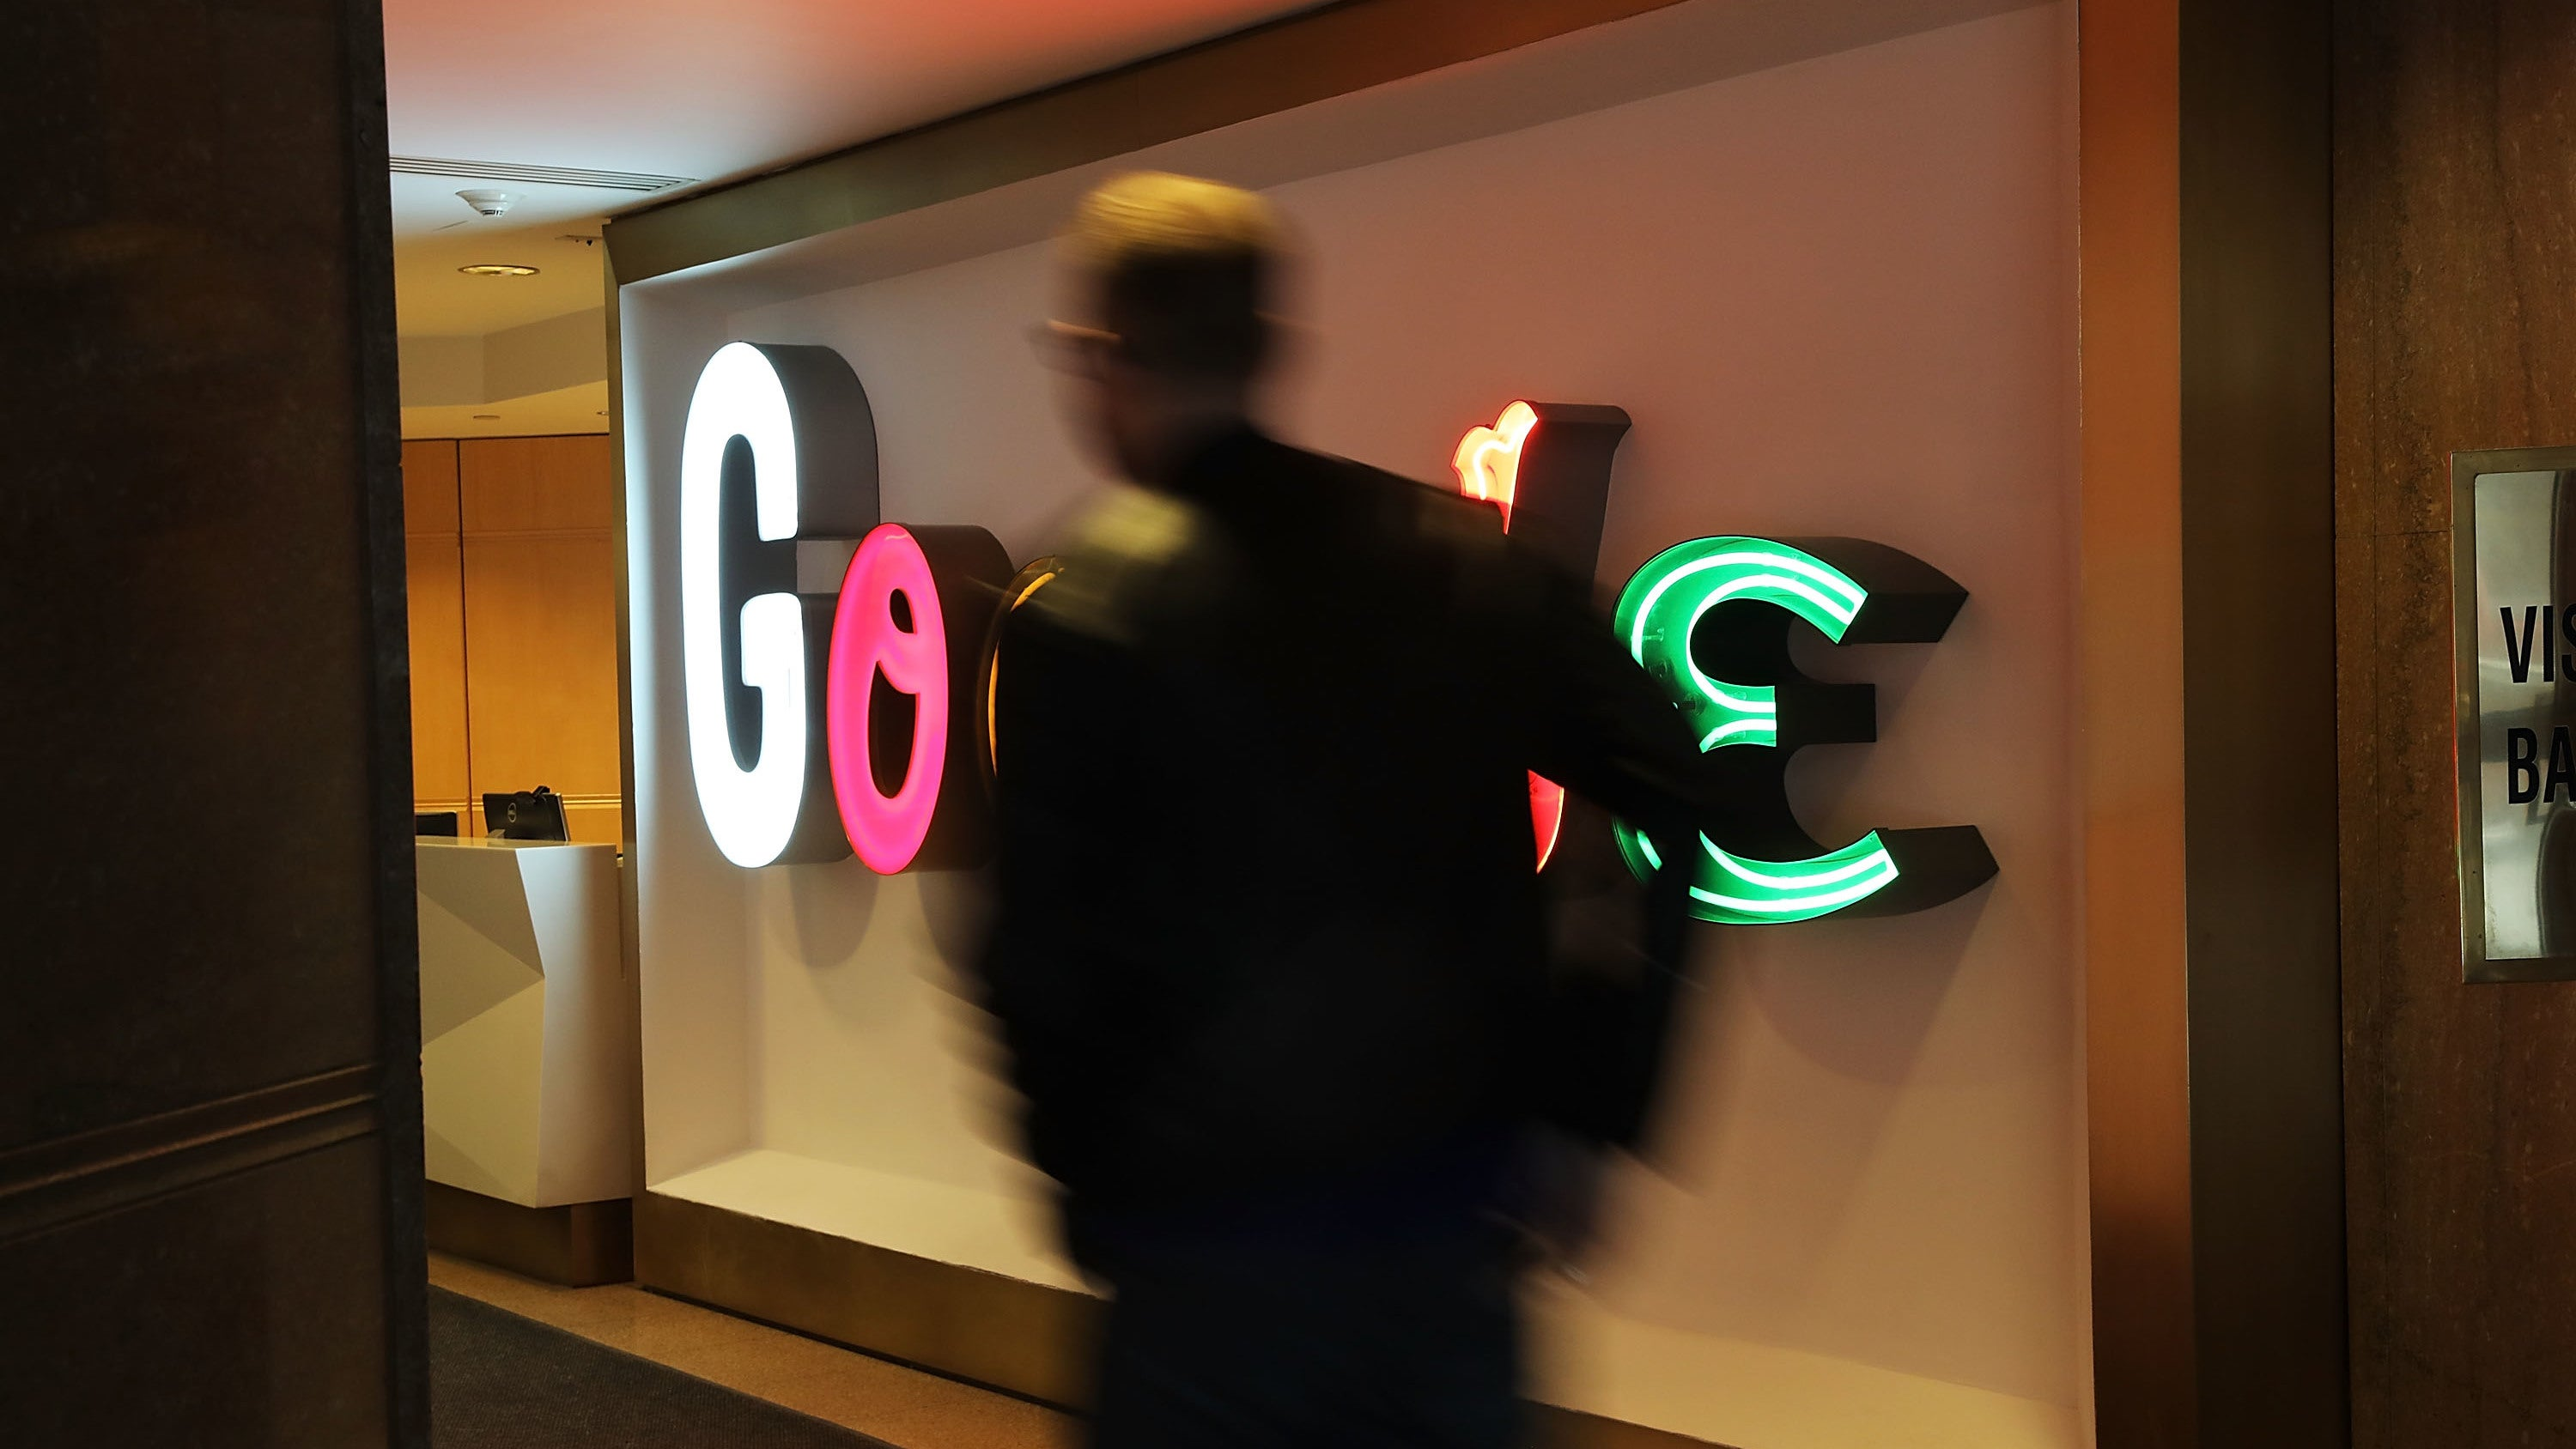 When Are We Going To Get Mad At Google?